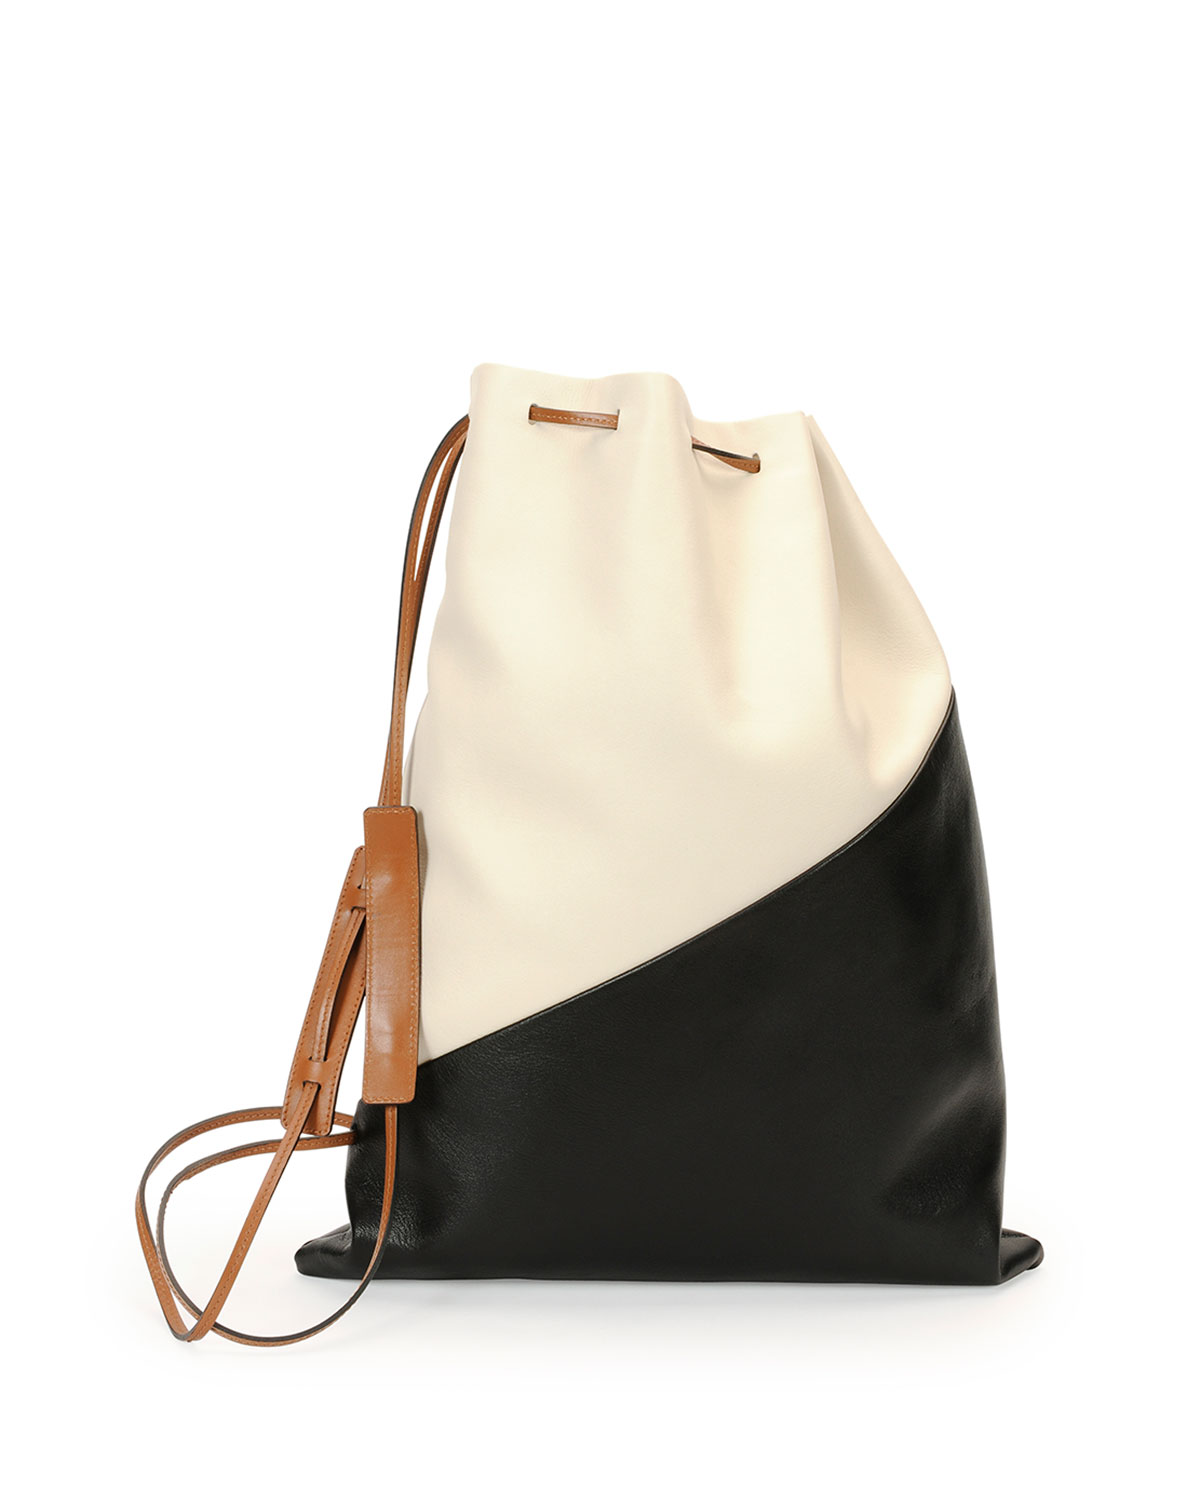 Bicolor Leather Laundry Bag White Black